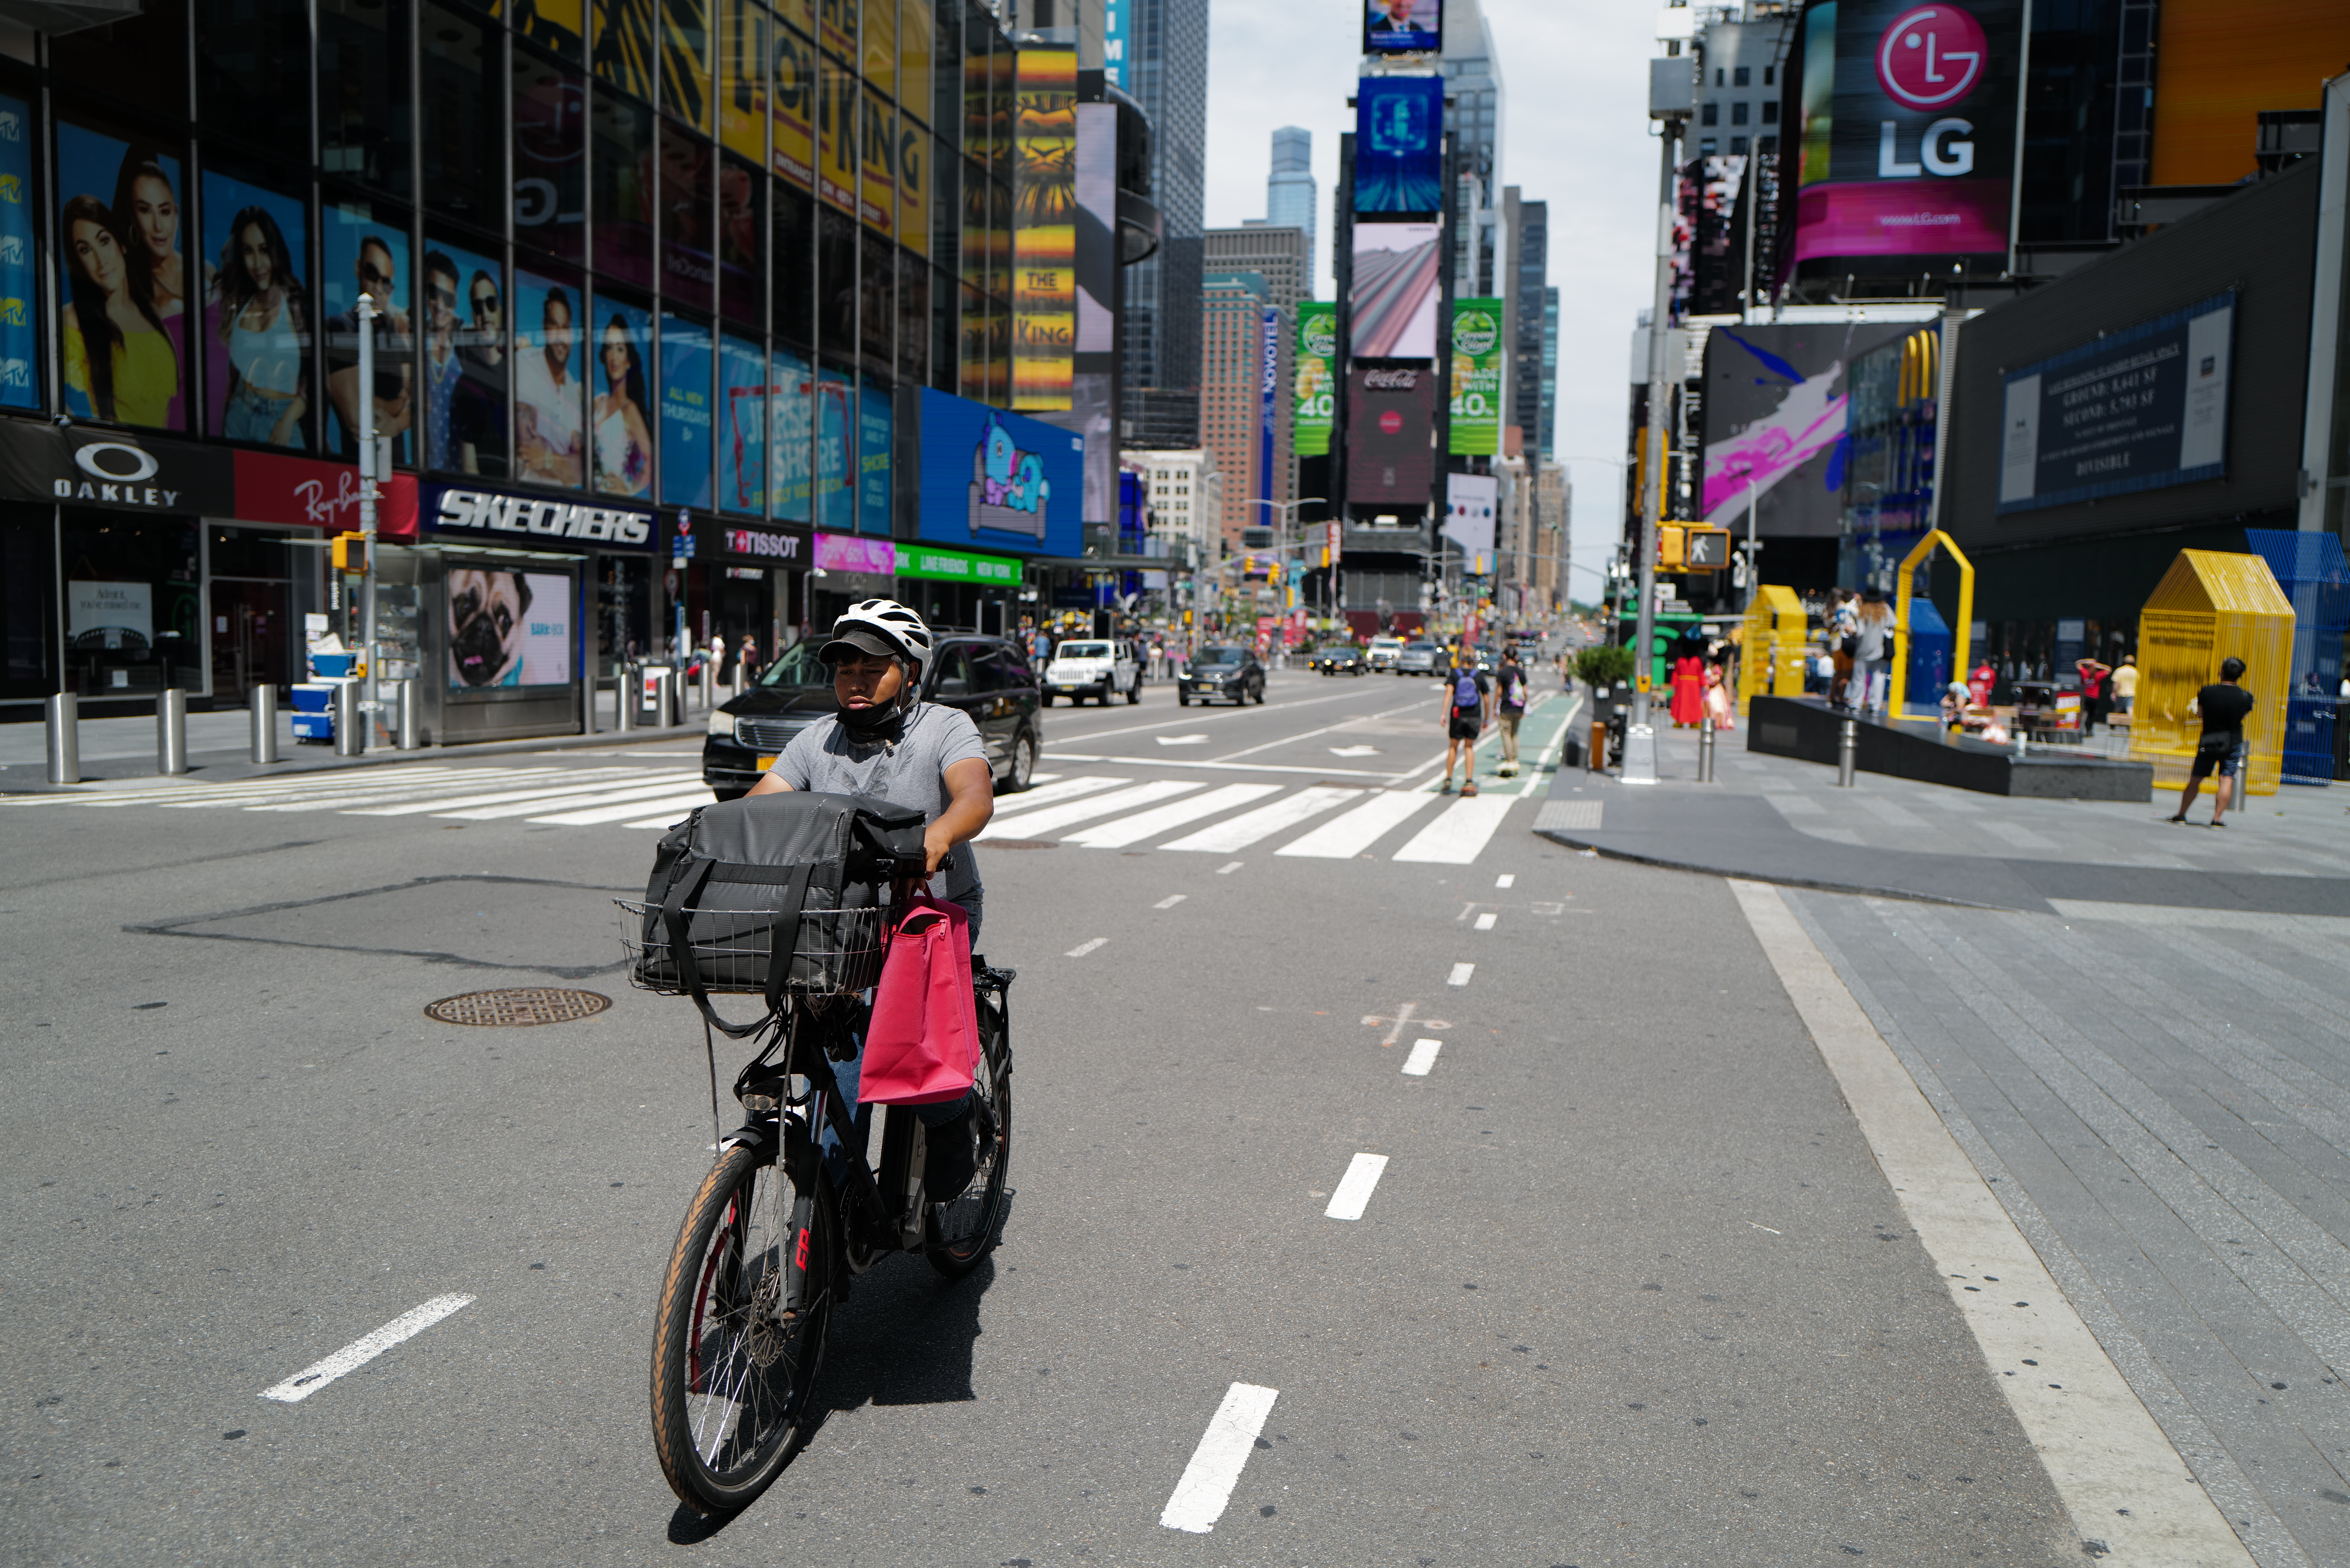 A food delivery person on a bike in Times Square, with a bag of good